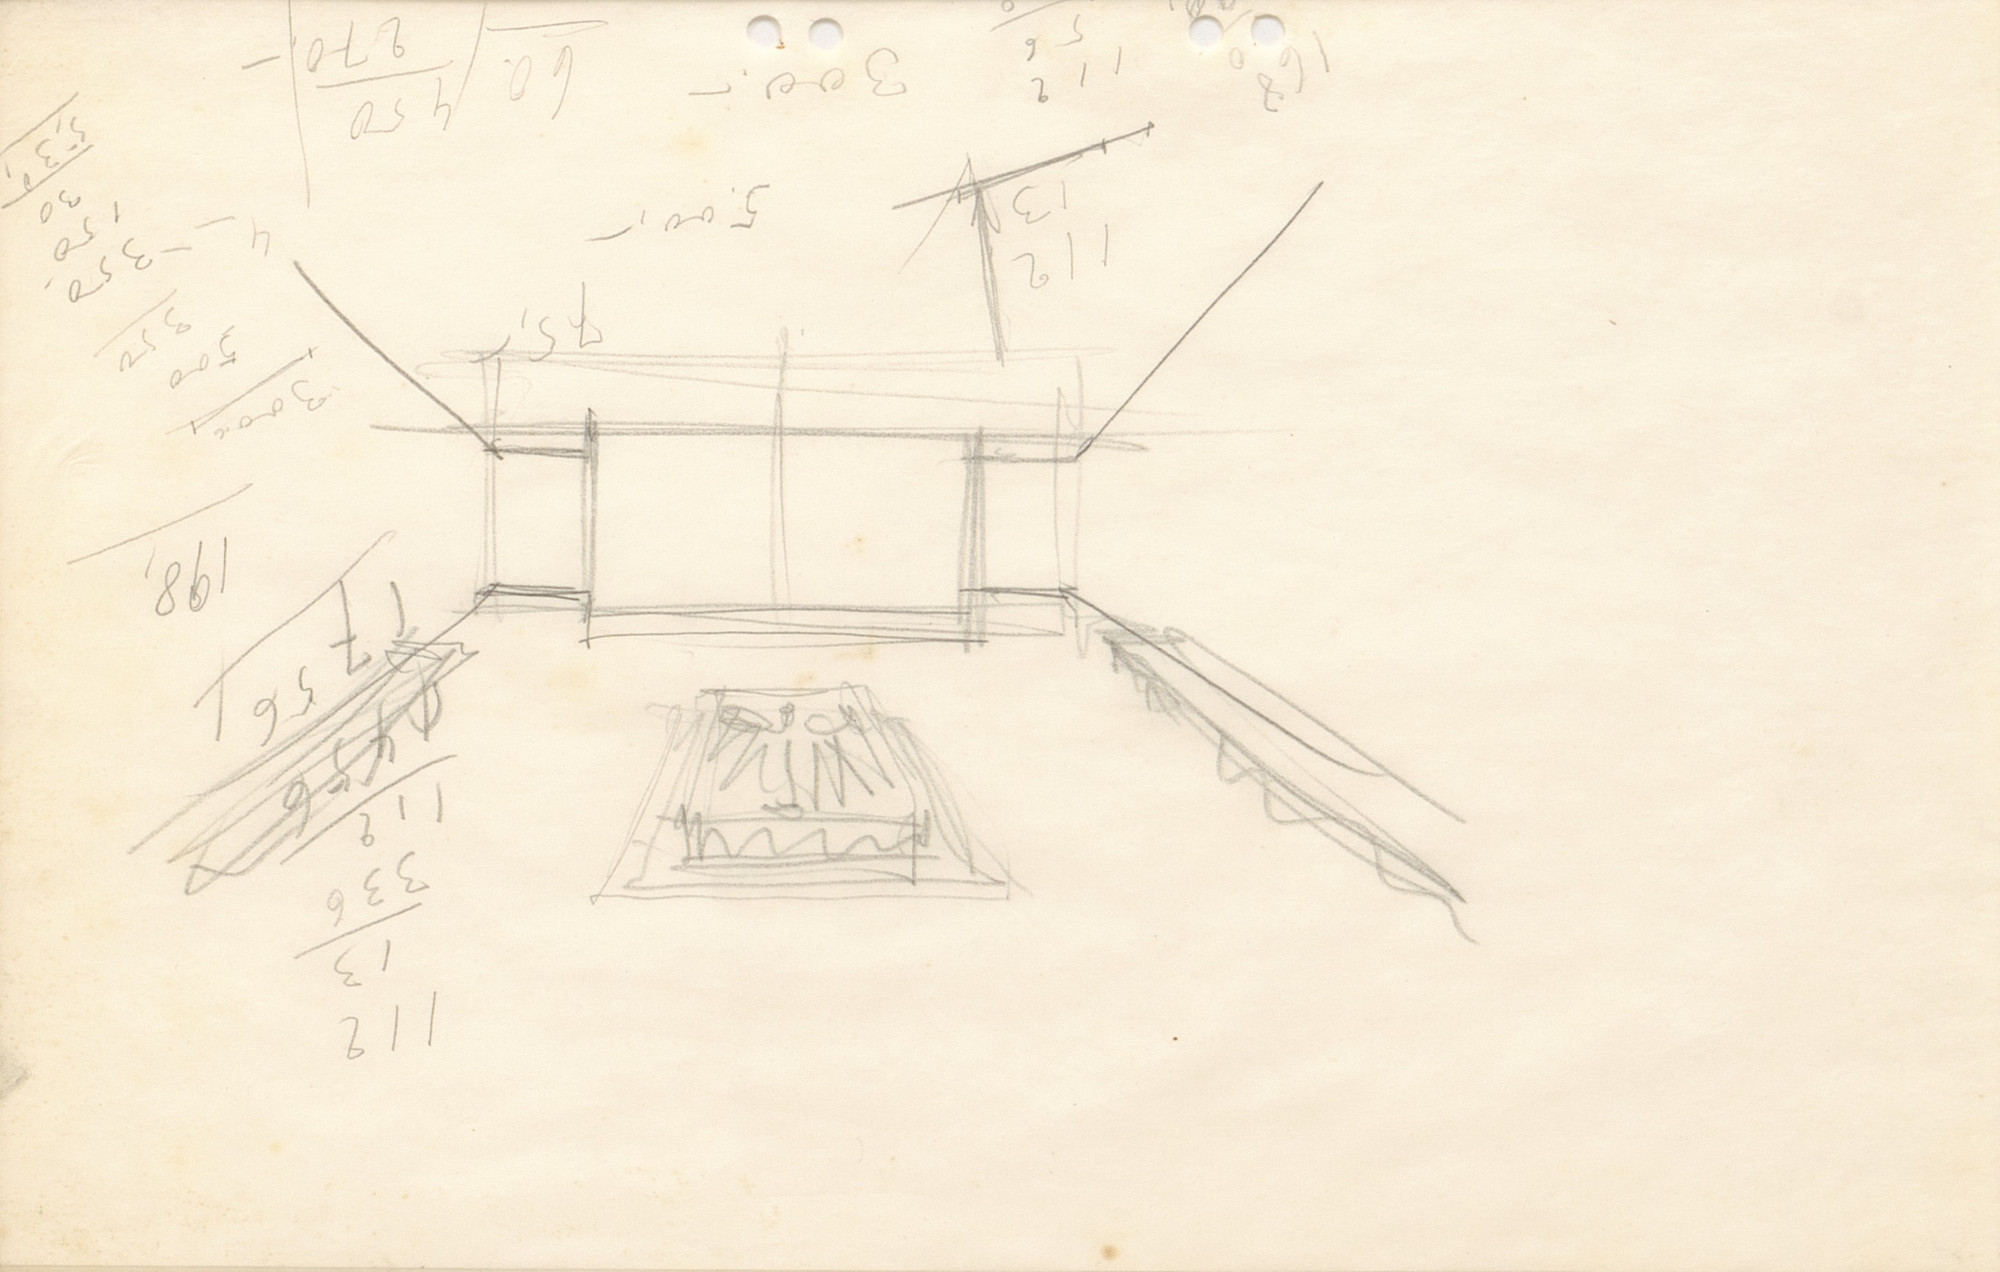 Ludwig Mies van der Rohe. Neue Wache War Memorial Project, Berlin-Mitte, Germany, Sketch interior perspective with computations.. 1930